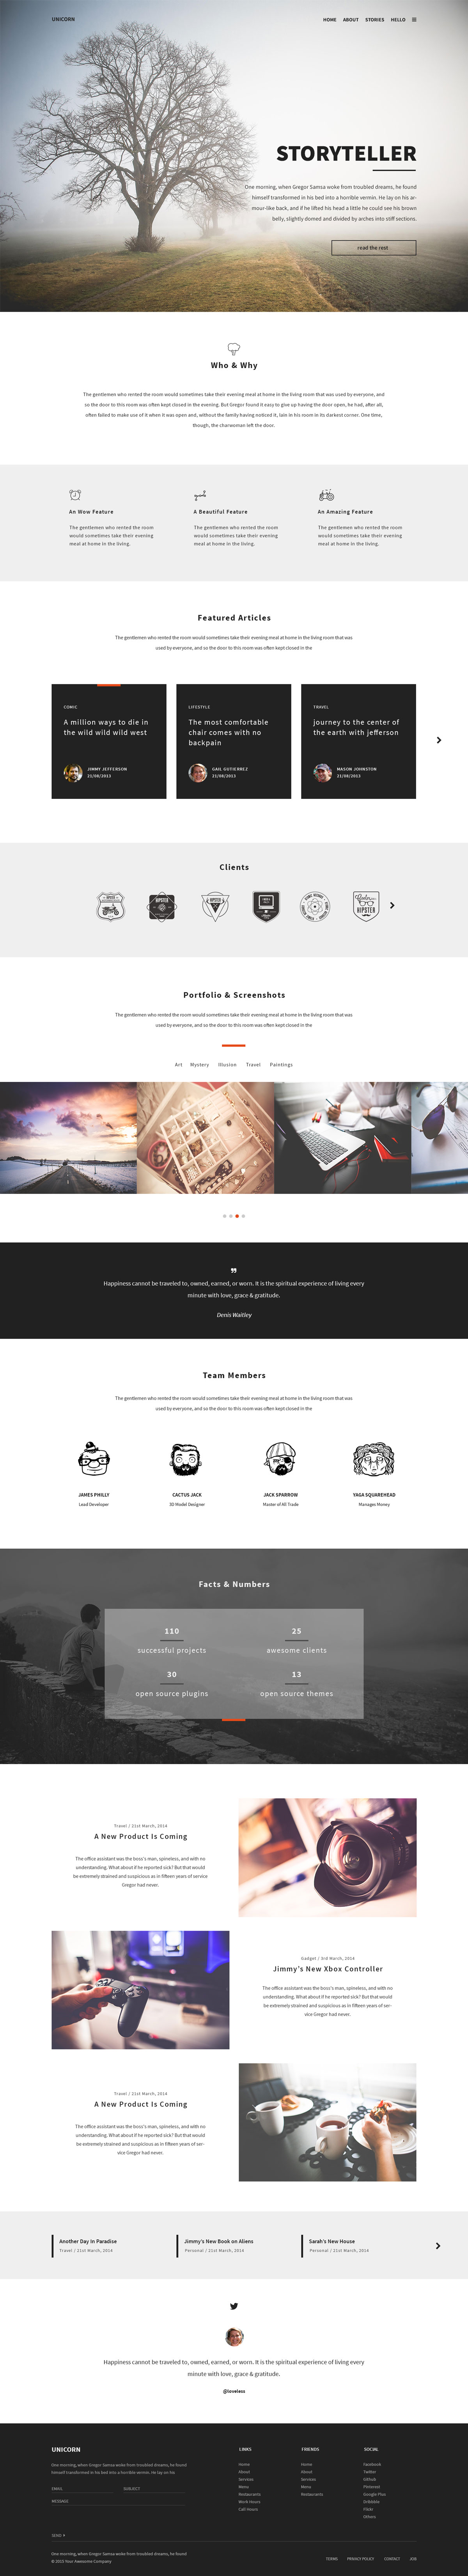 Unicorn---One-page-Free-Modern-PSD-Template